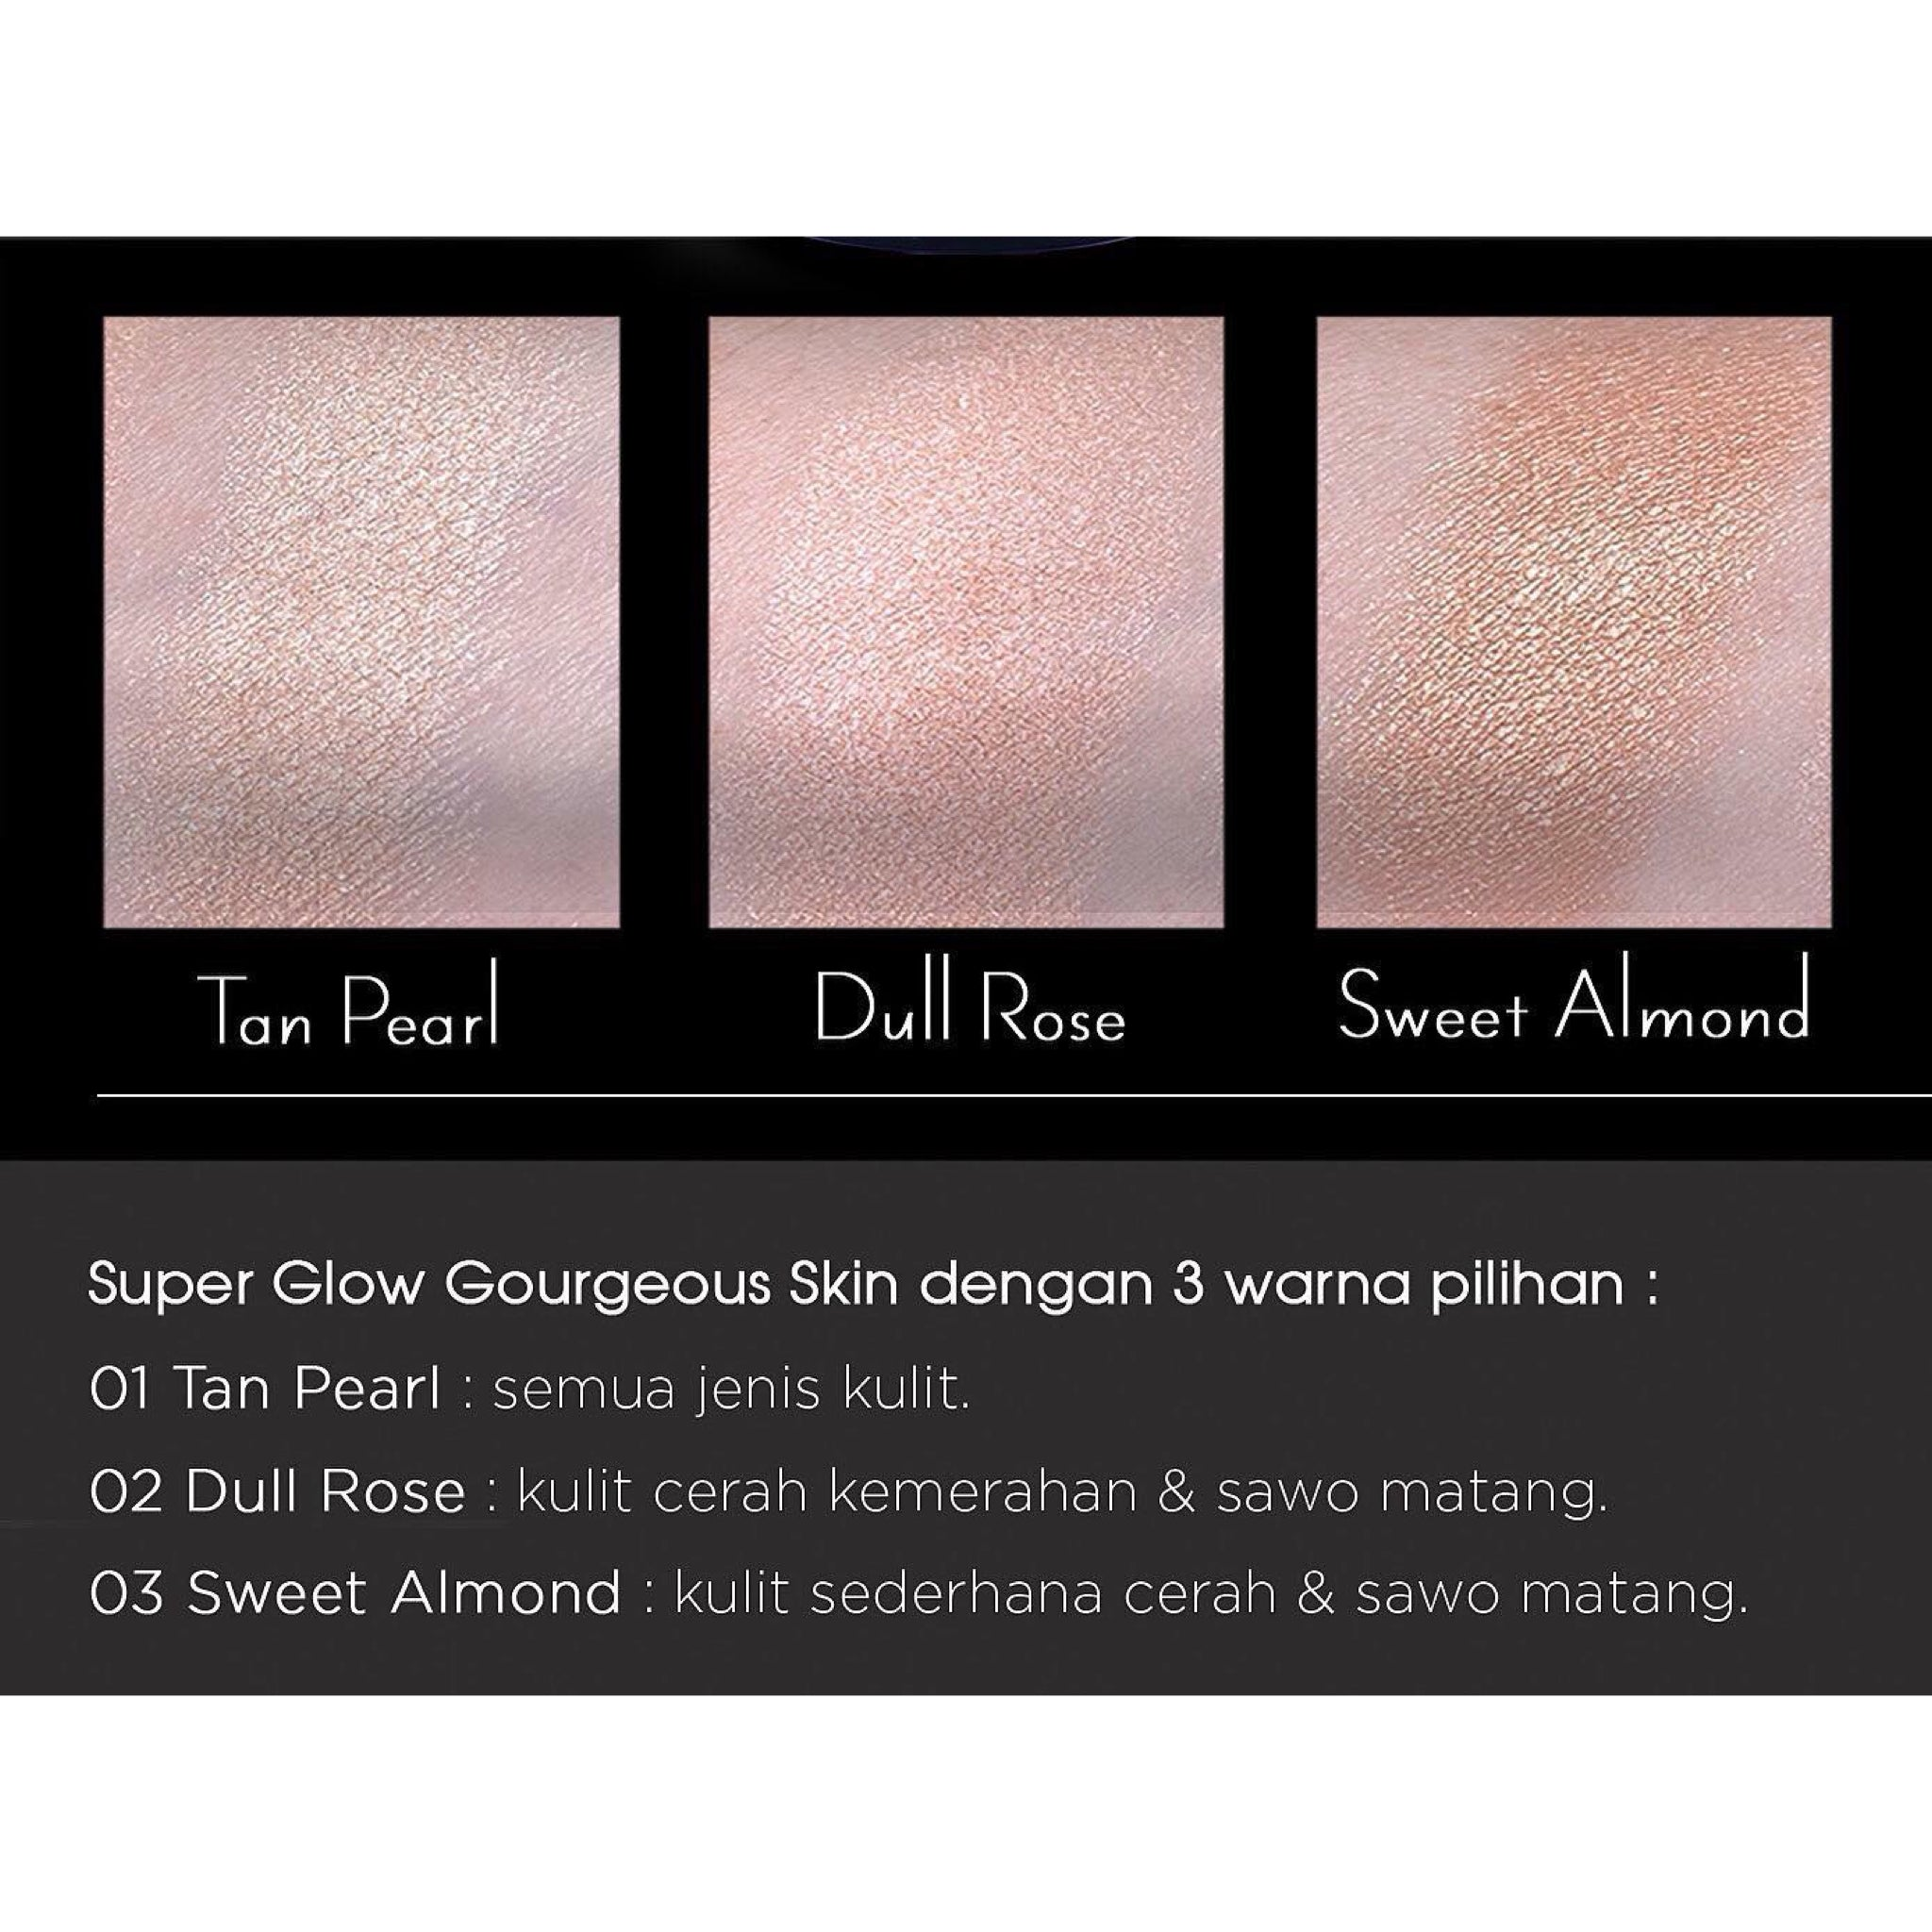 Superglow Gorgeous Skin